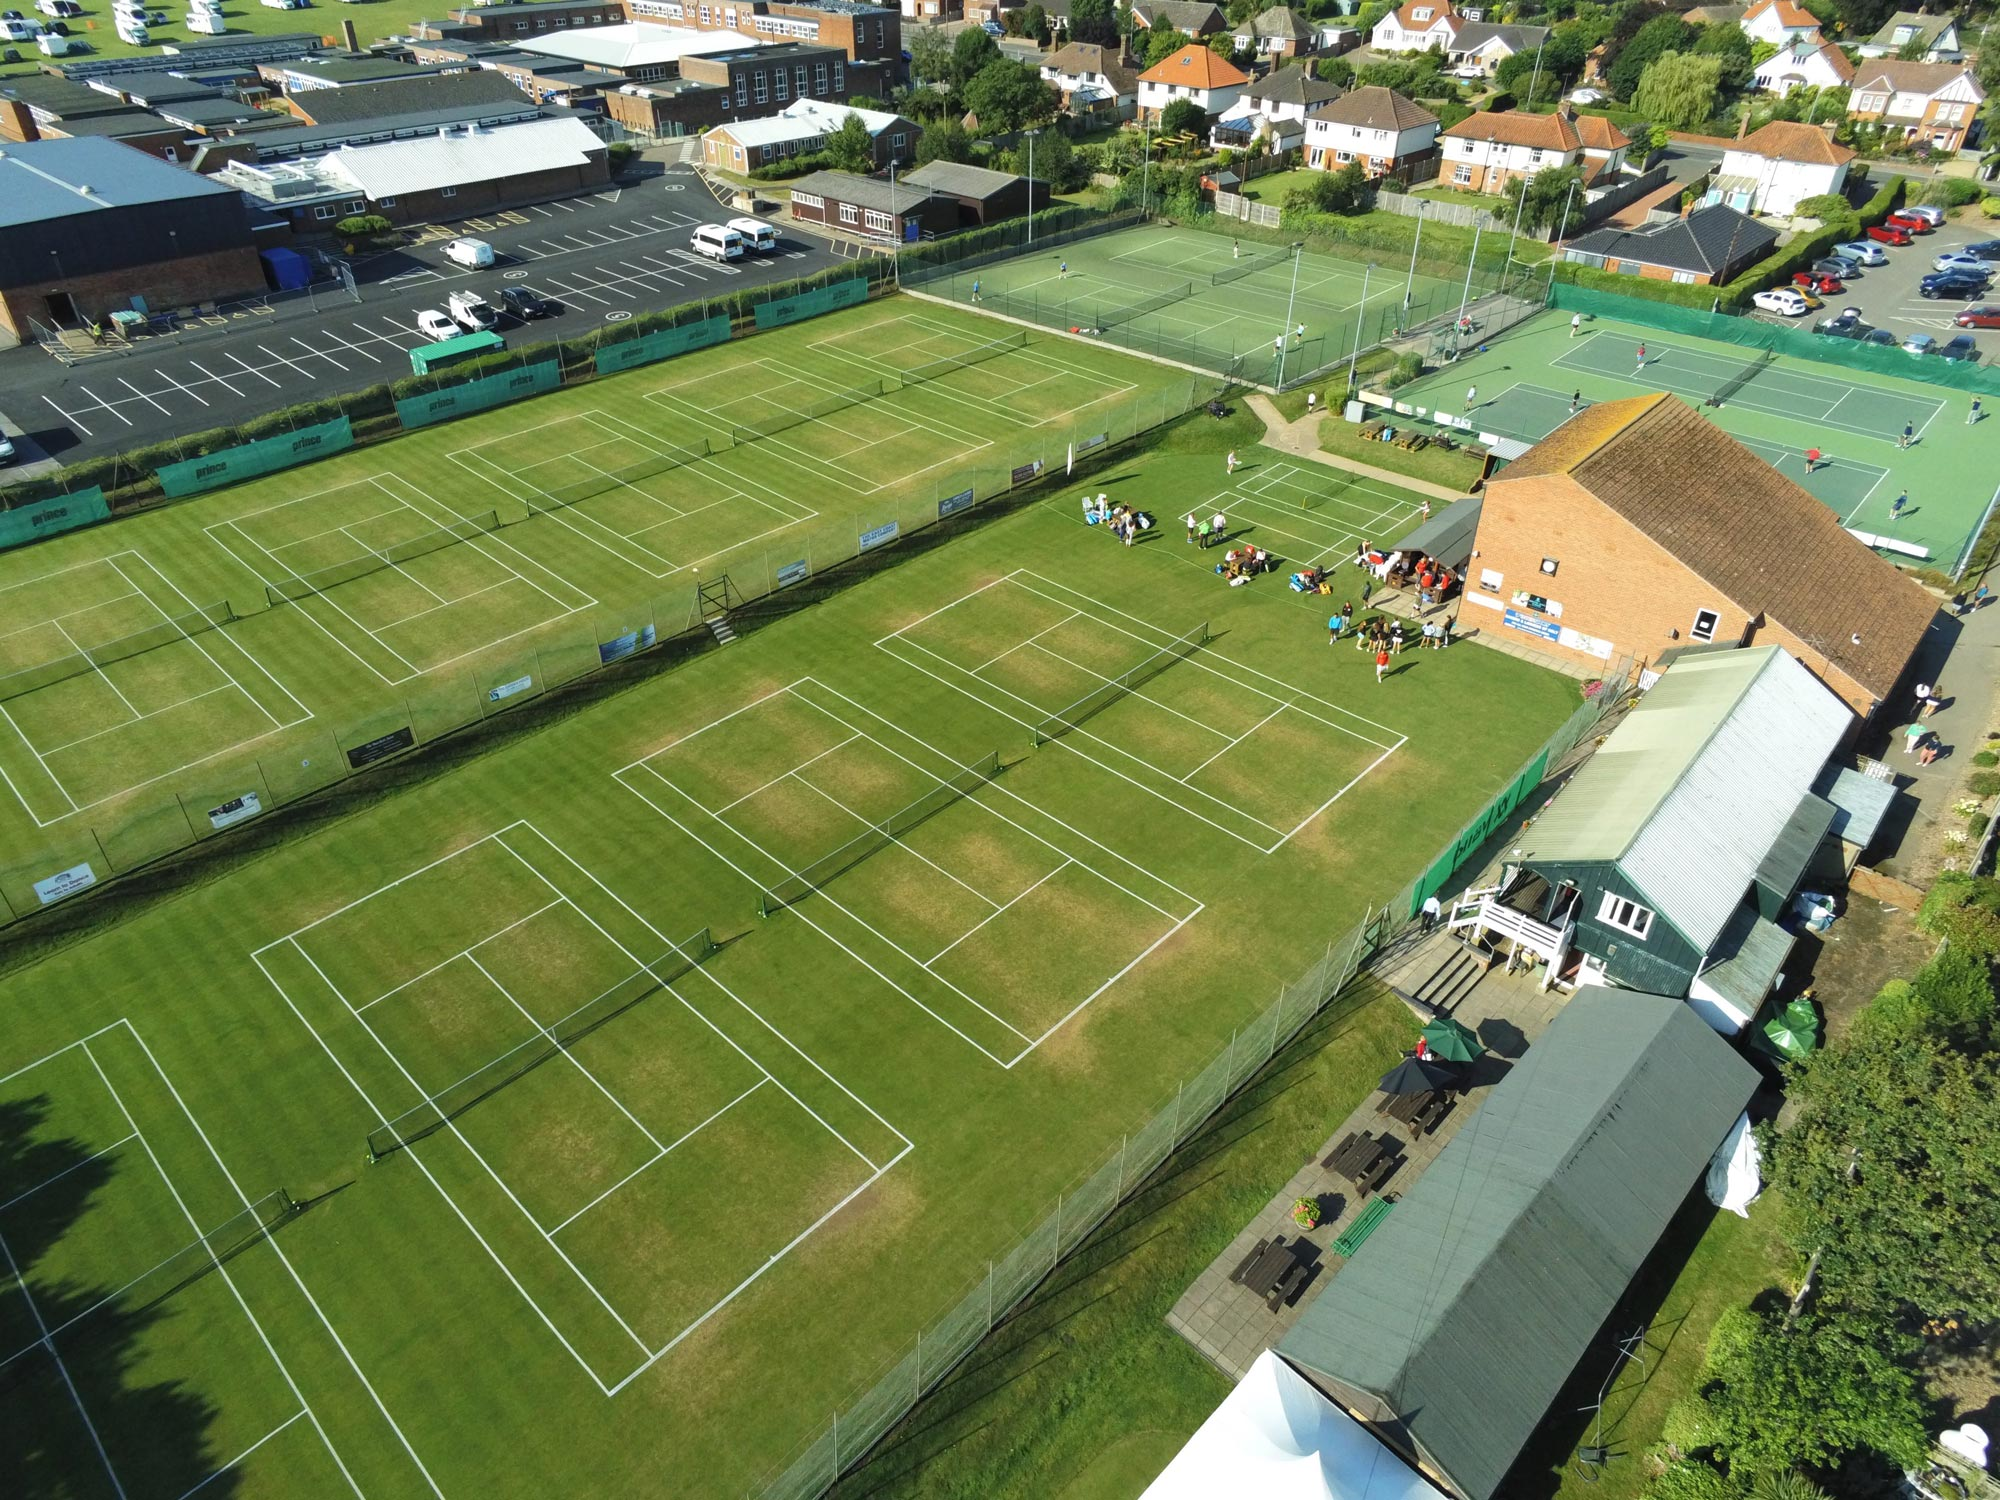 Cromer Tennis Tournament - from the air